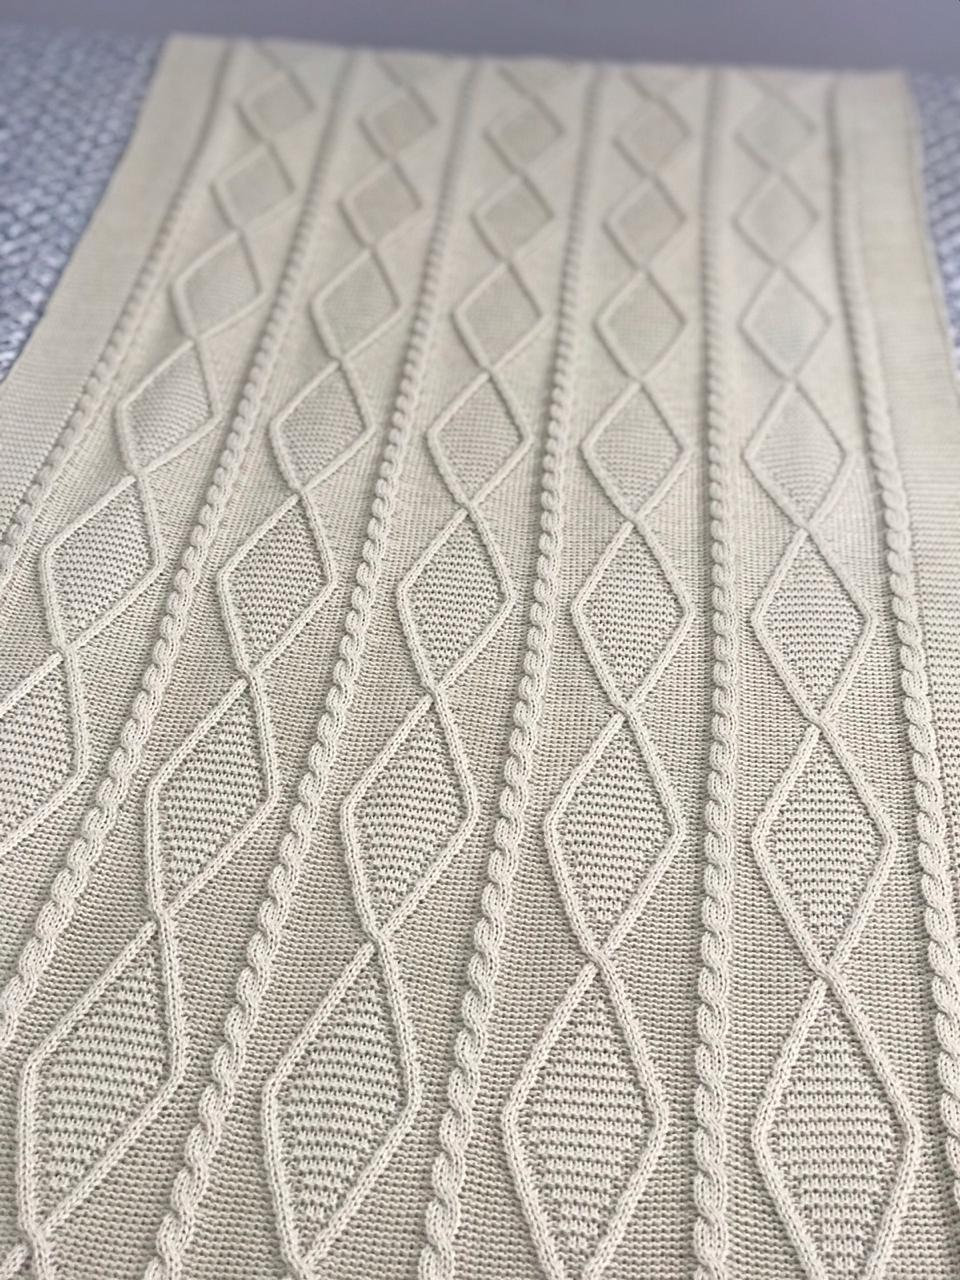 Peseira Tricot Geométrico Bege Queen 2,30x60 Paloma Home